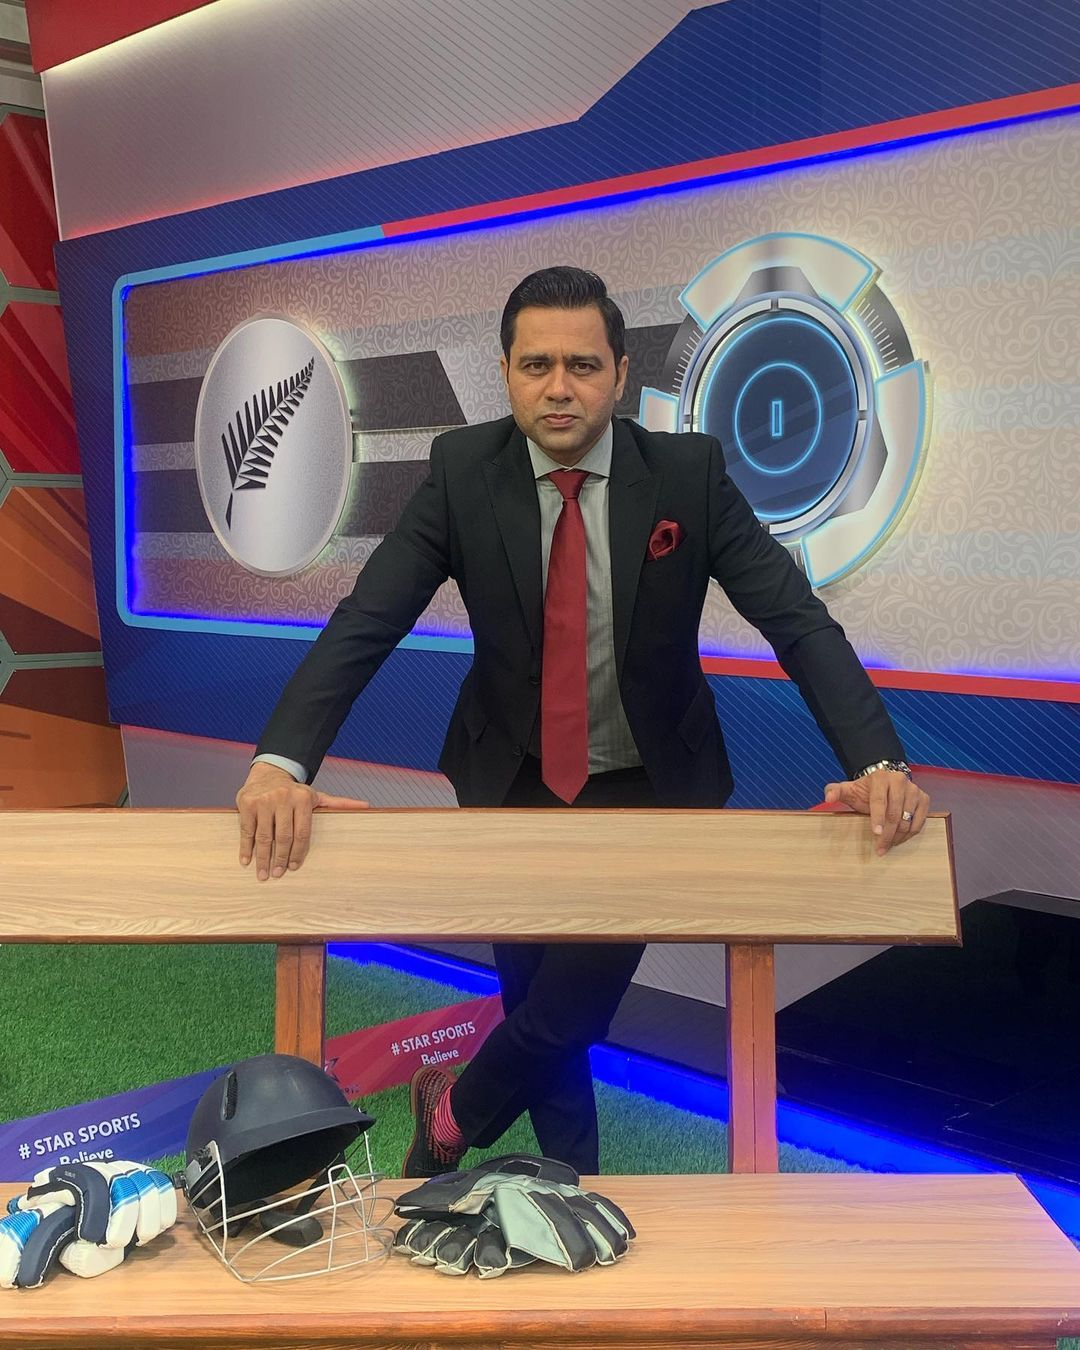 Aakash Chopra shares his pick for top Indian Captain of all time | Aakash Chopra Instagram